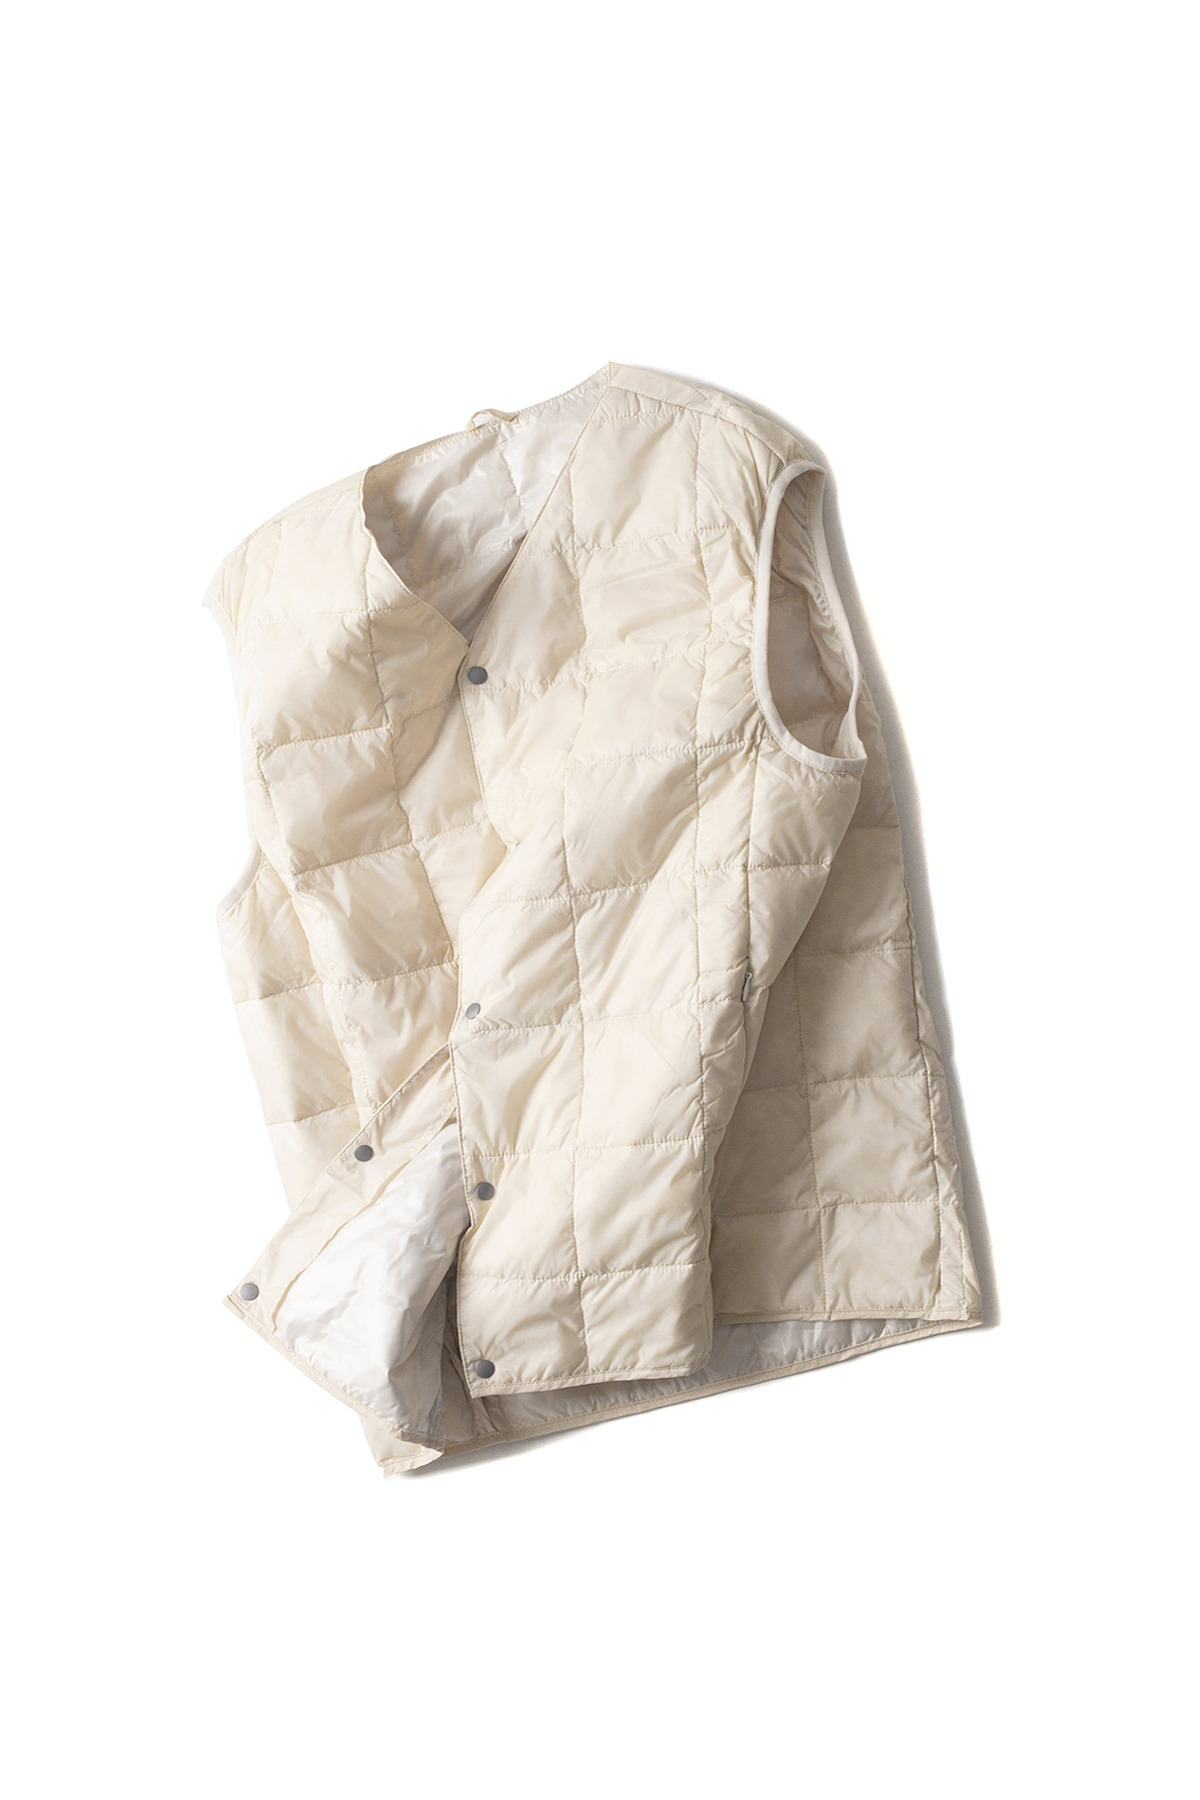 TAION :  V Neck Button Down Vest (Off White)